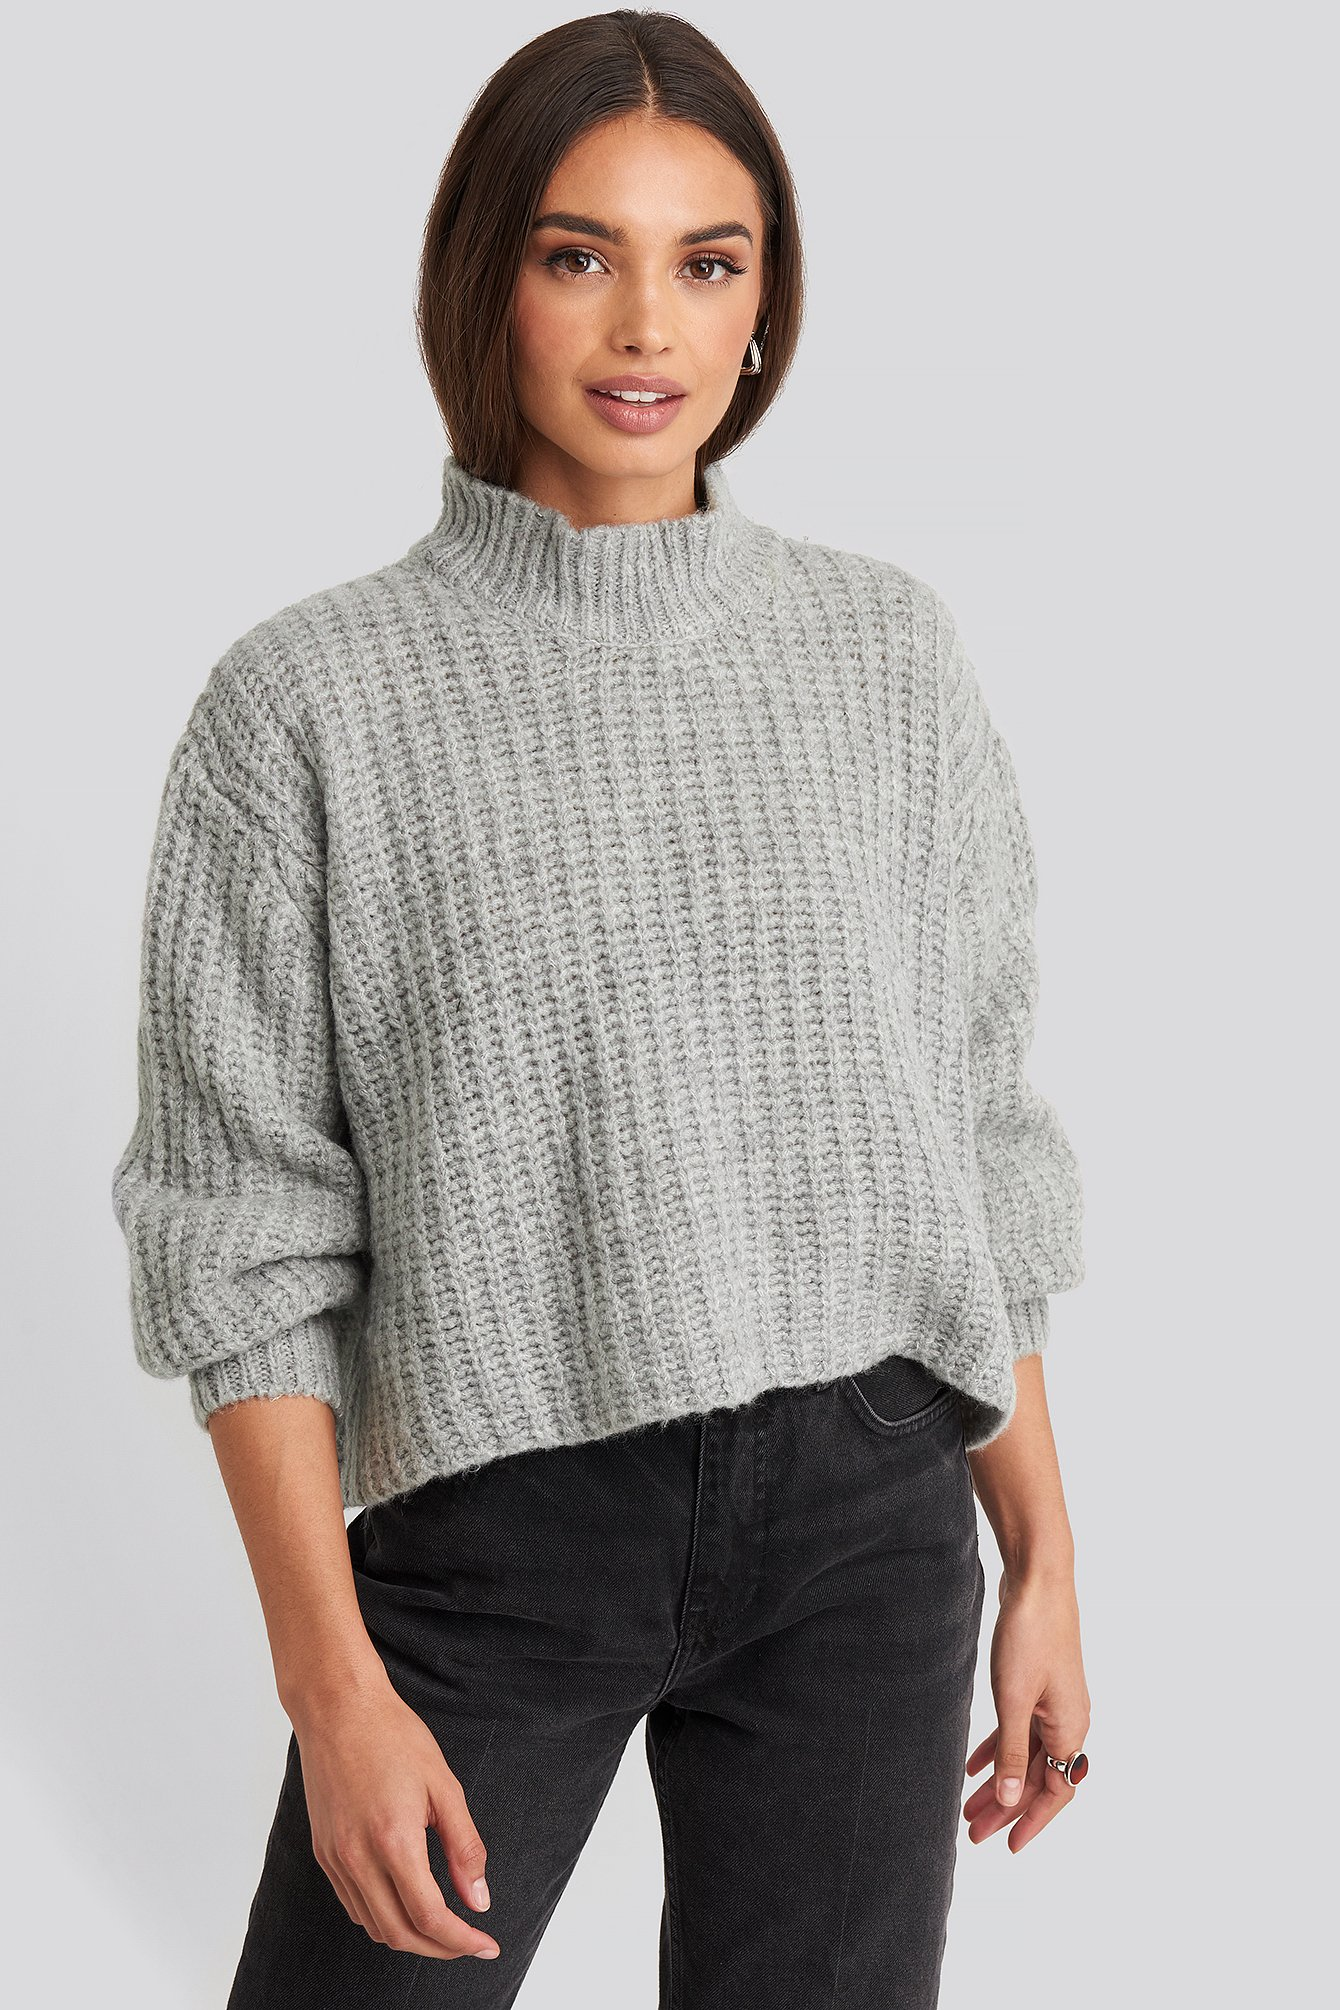 Trendyol Volume Sleeve Cropped Knitted Sweater - Grey